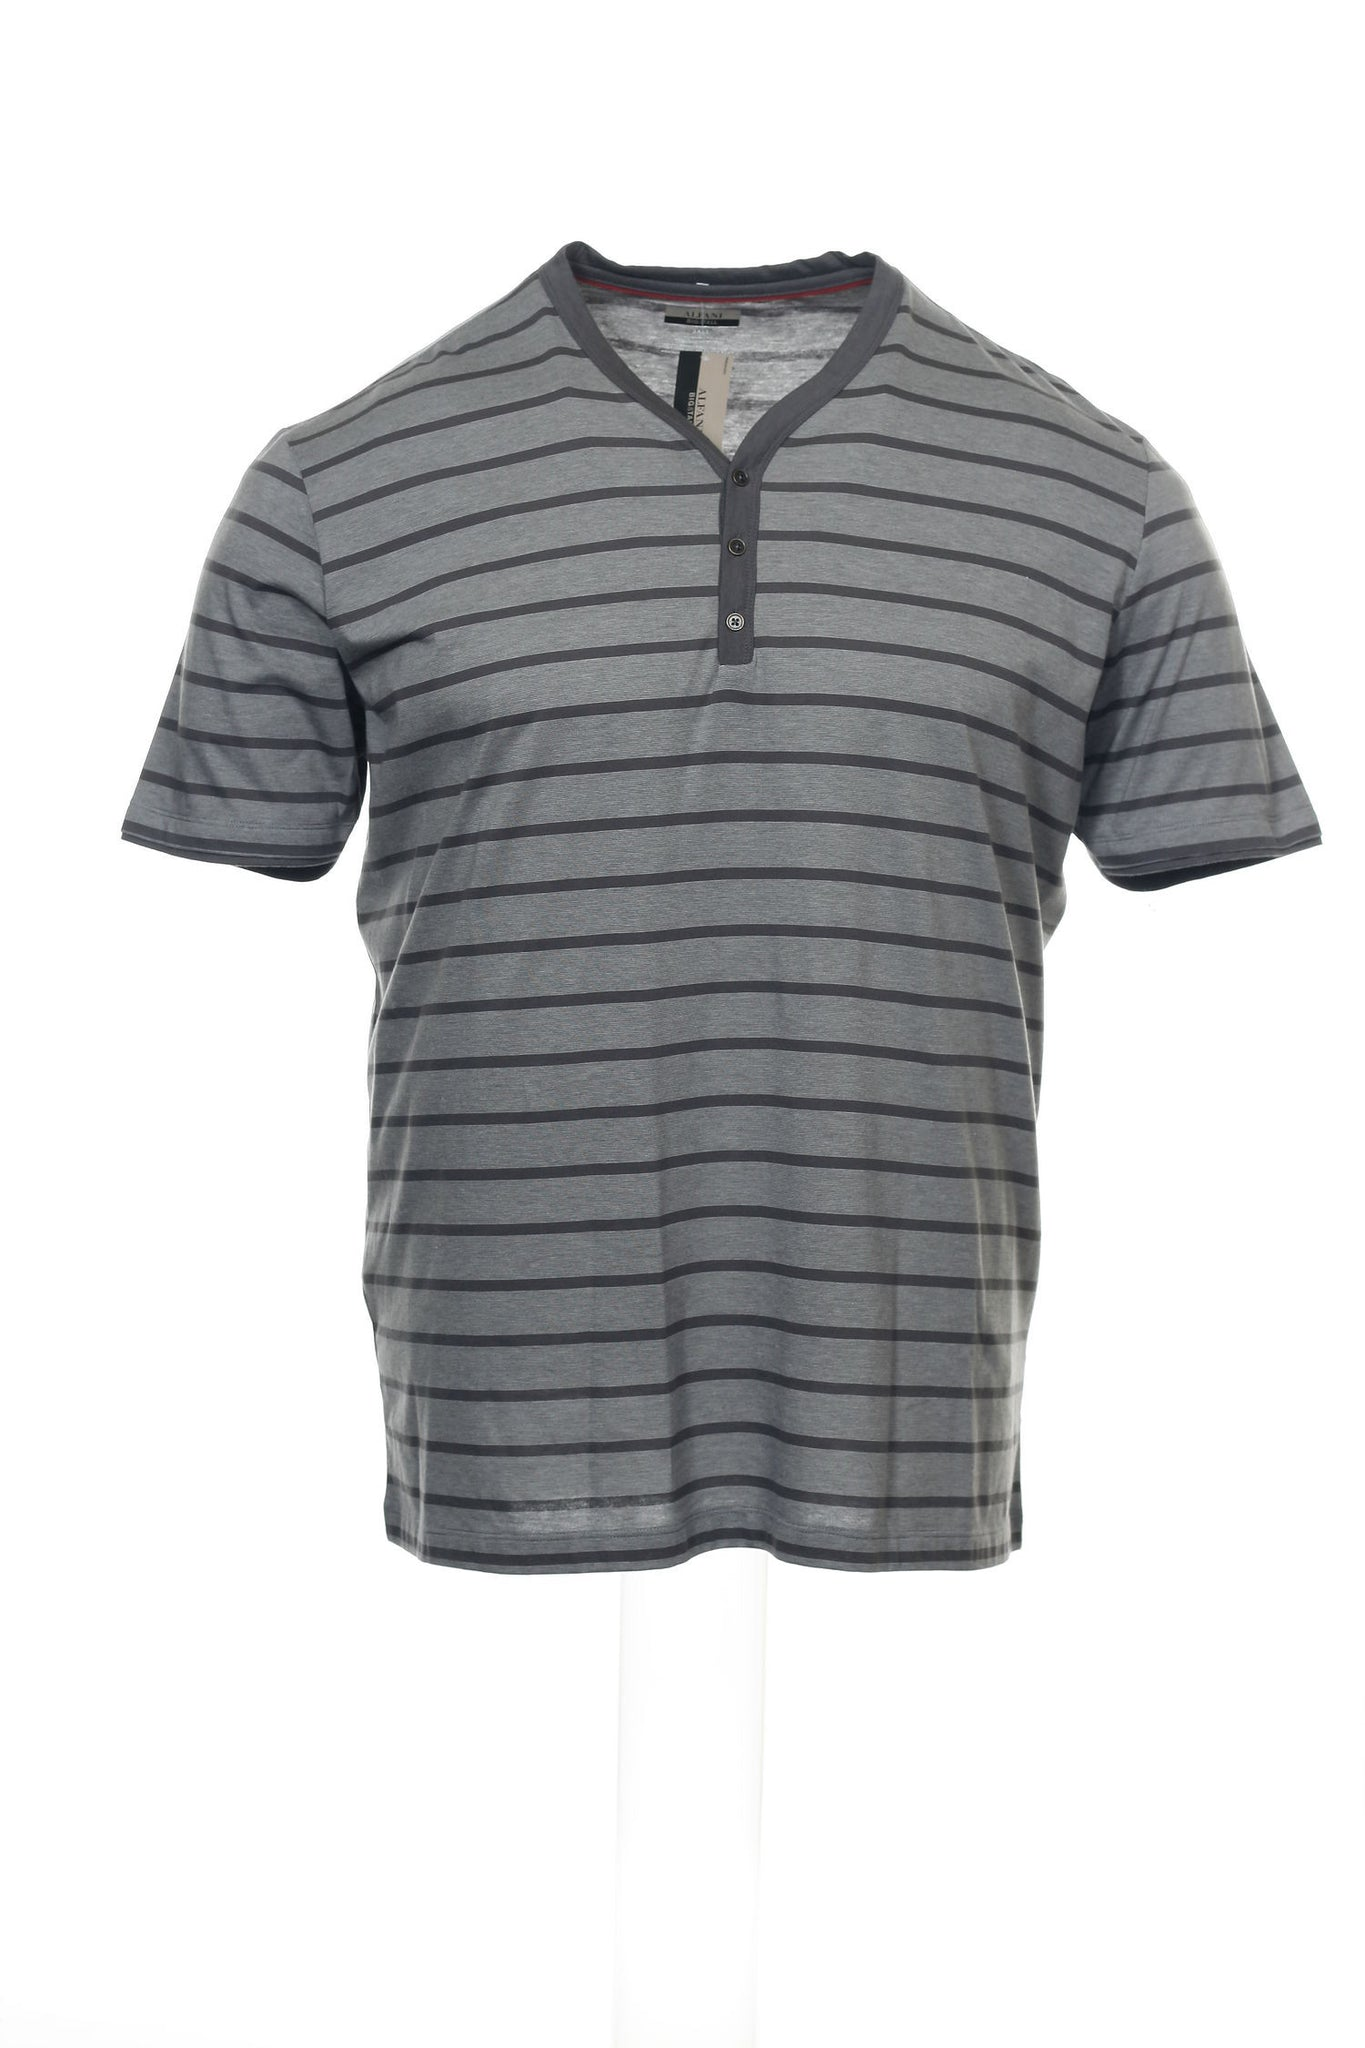 Big & Tall by Alfani Mens Gray Micro Striped Henley Shirt